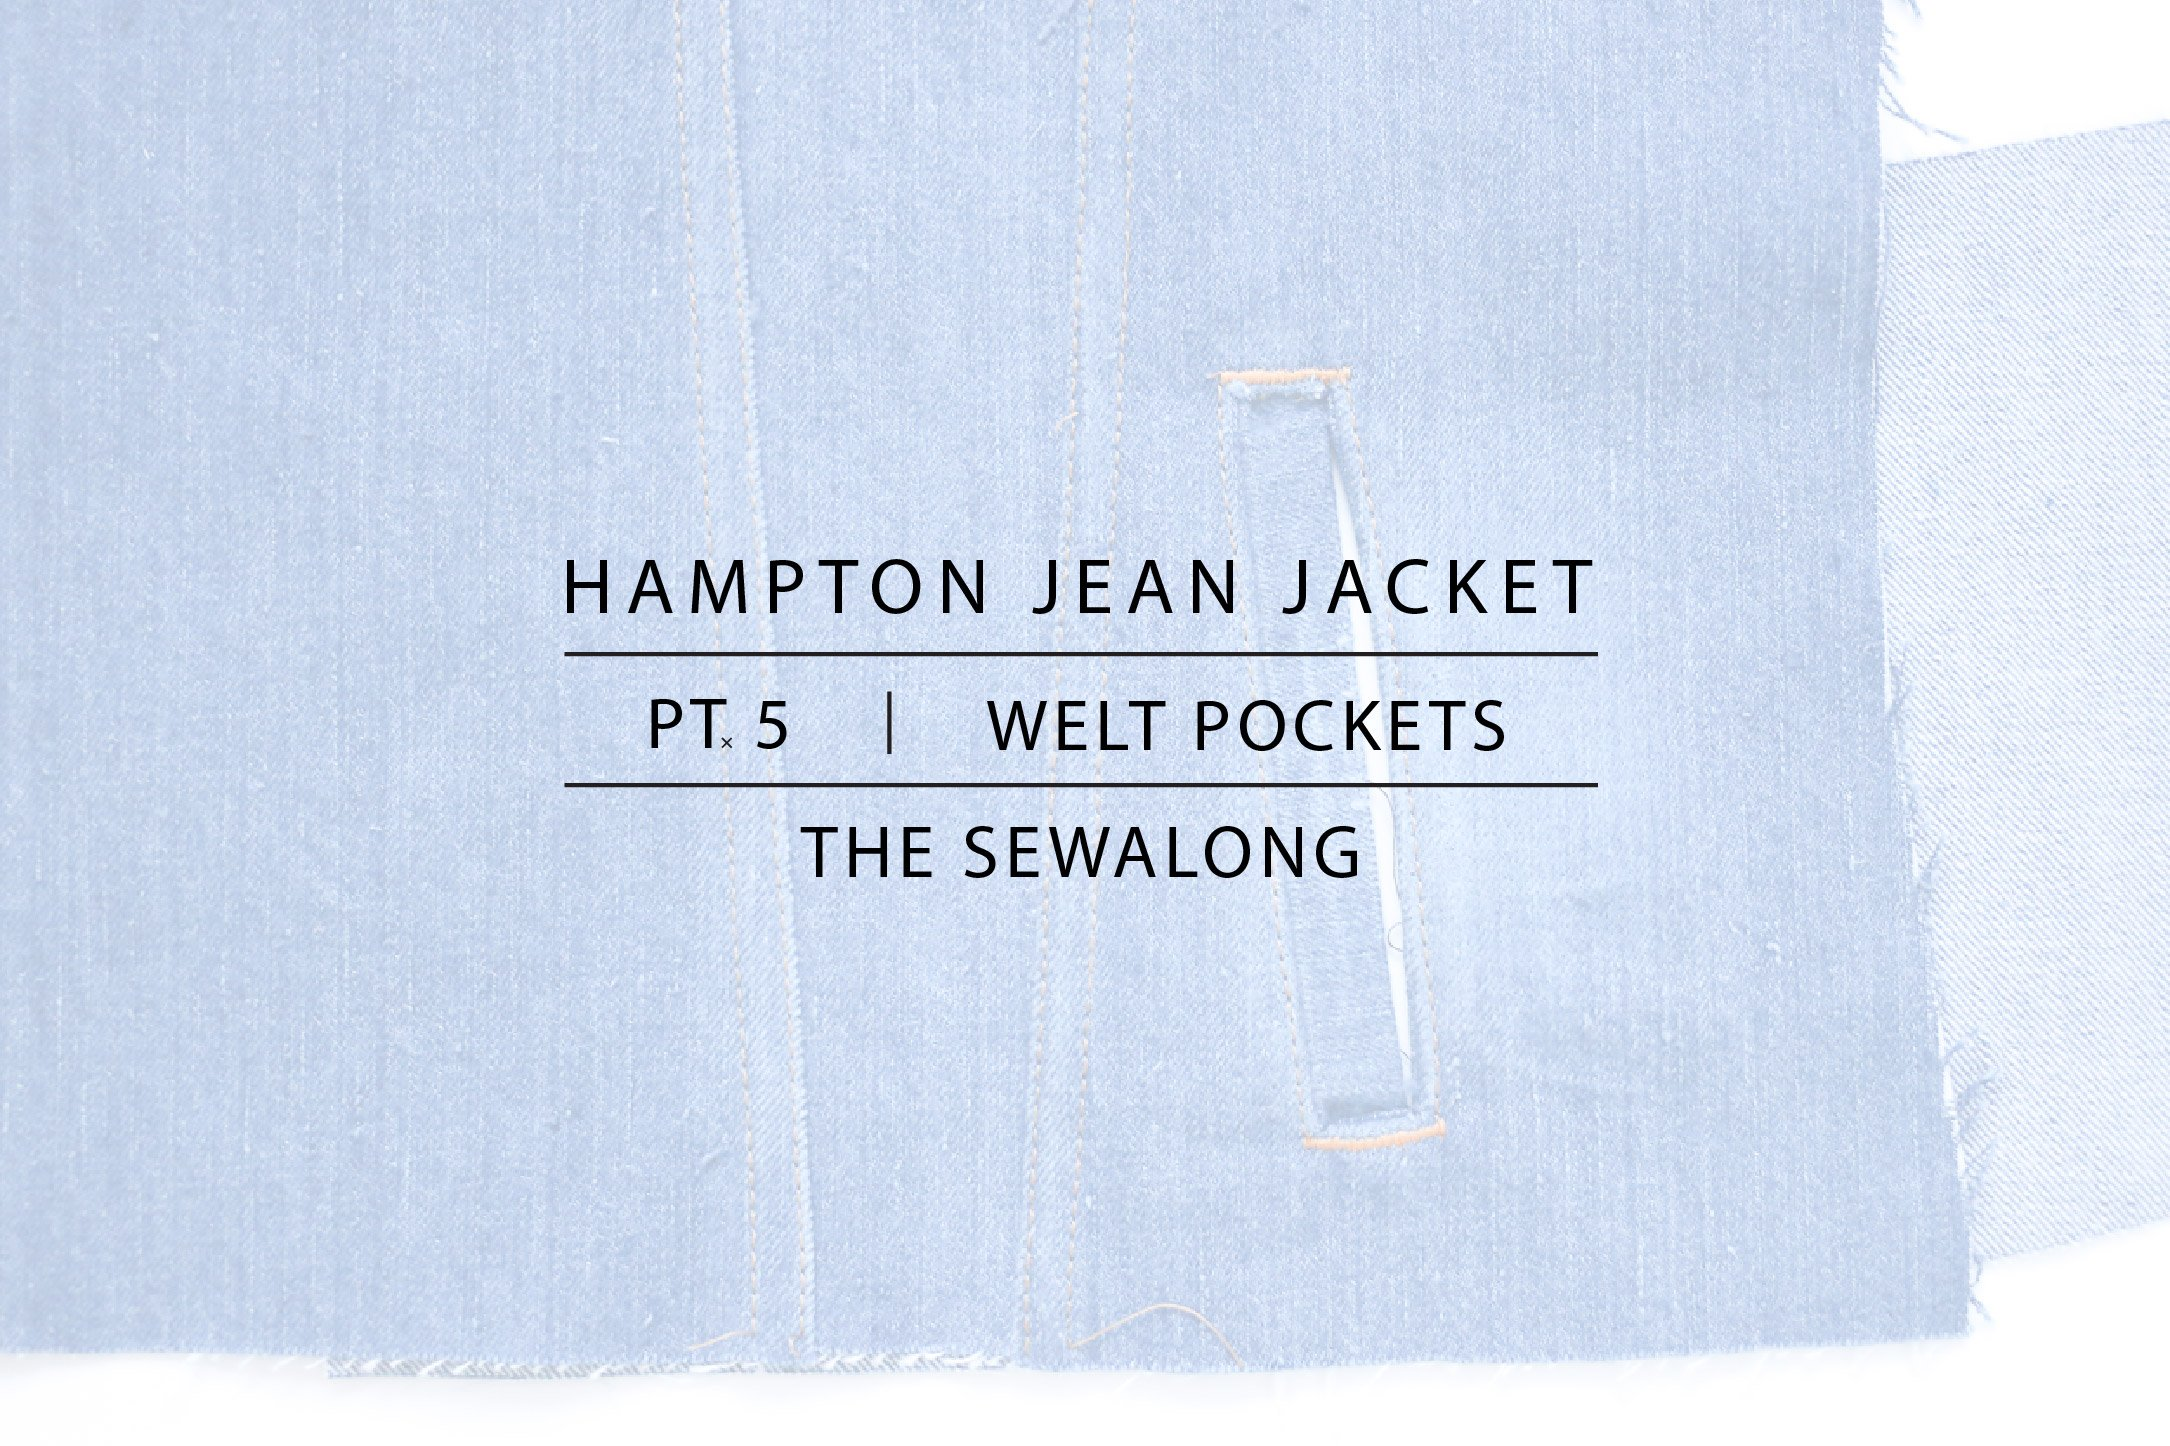 Hampton Jean Jacket Sewalong Pt. 5